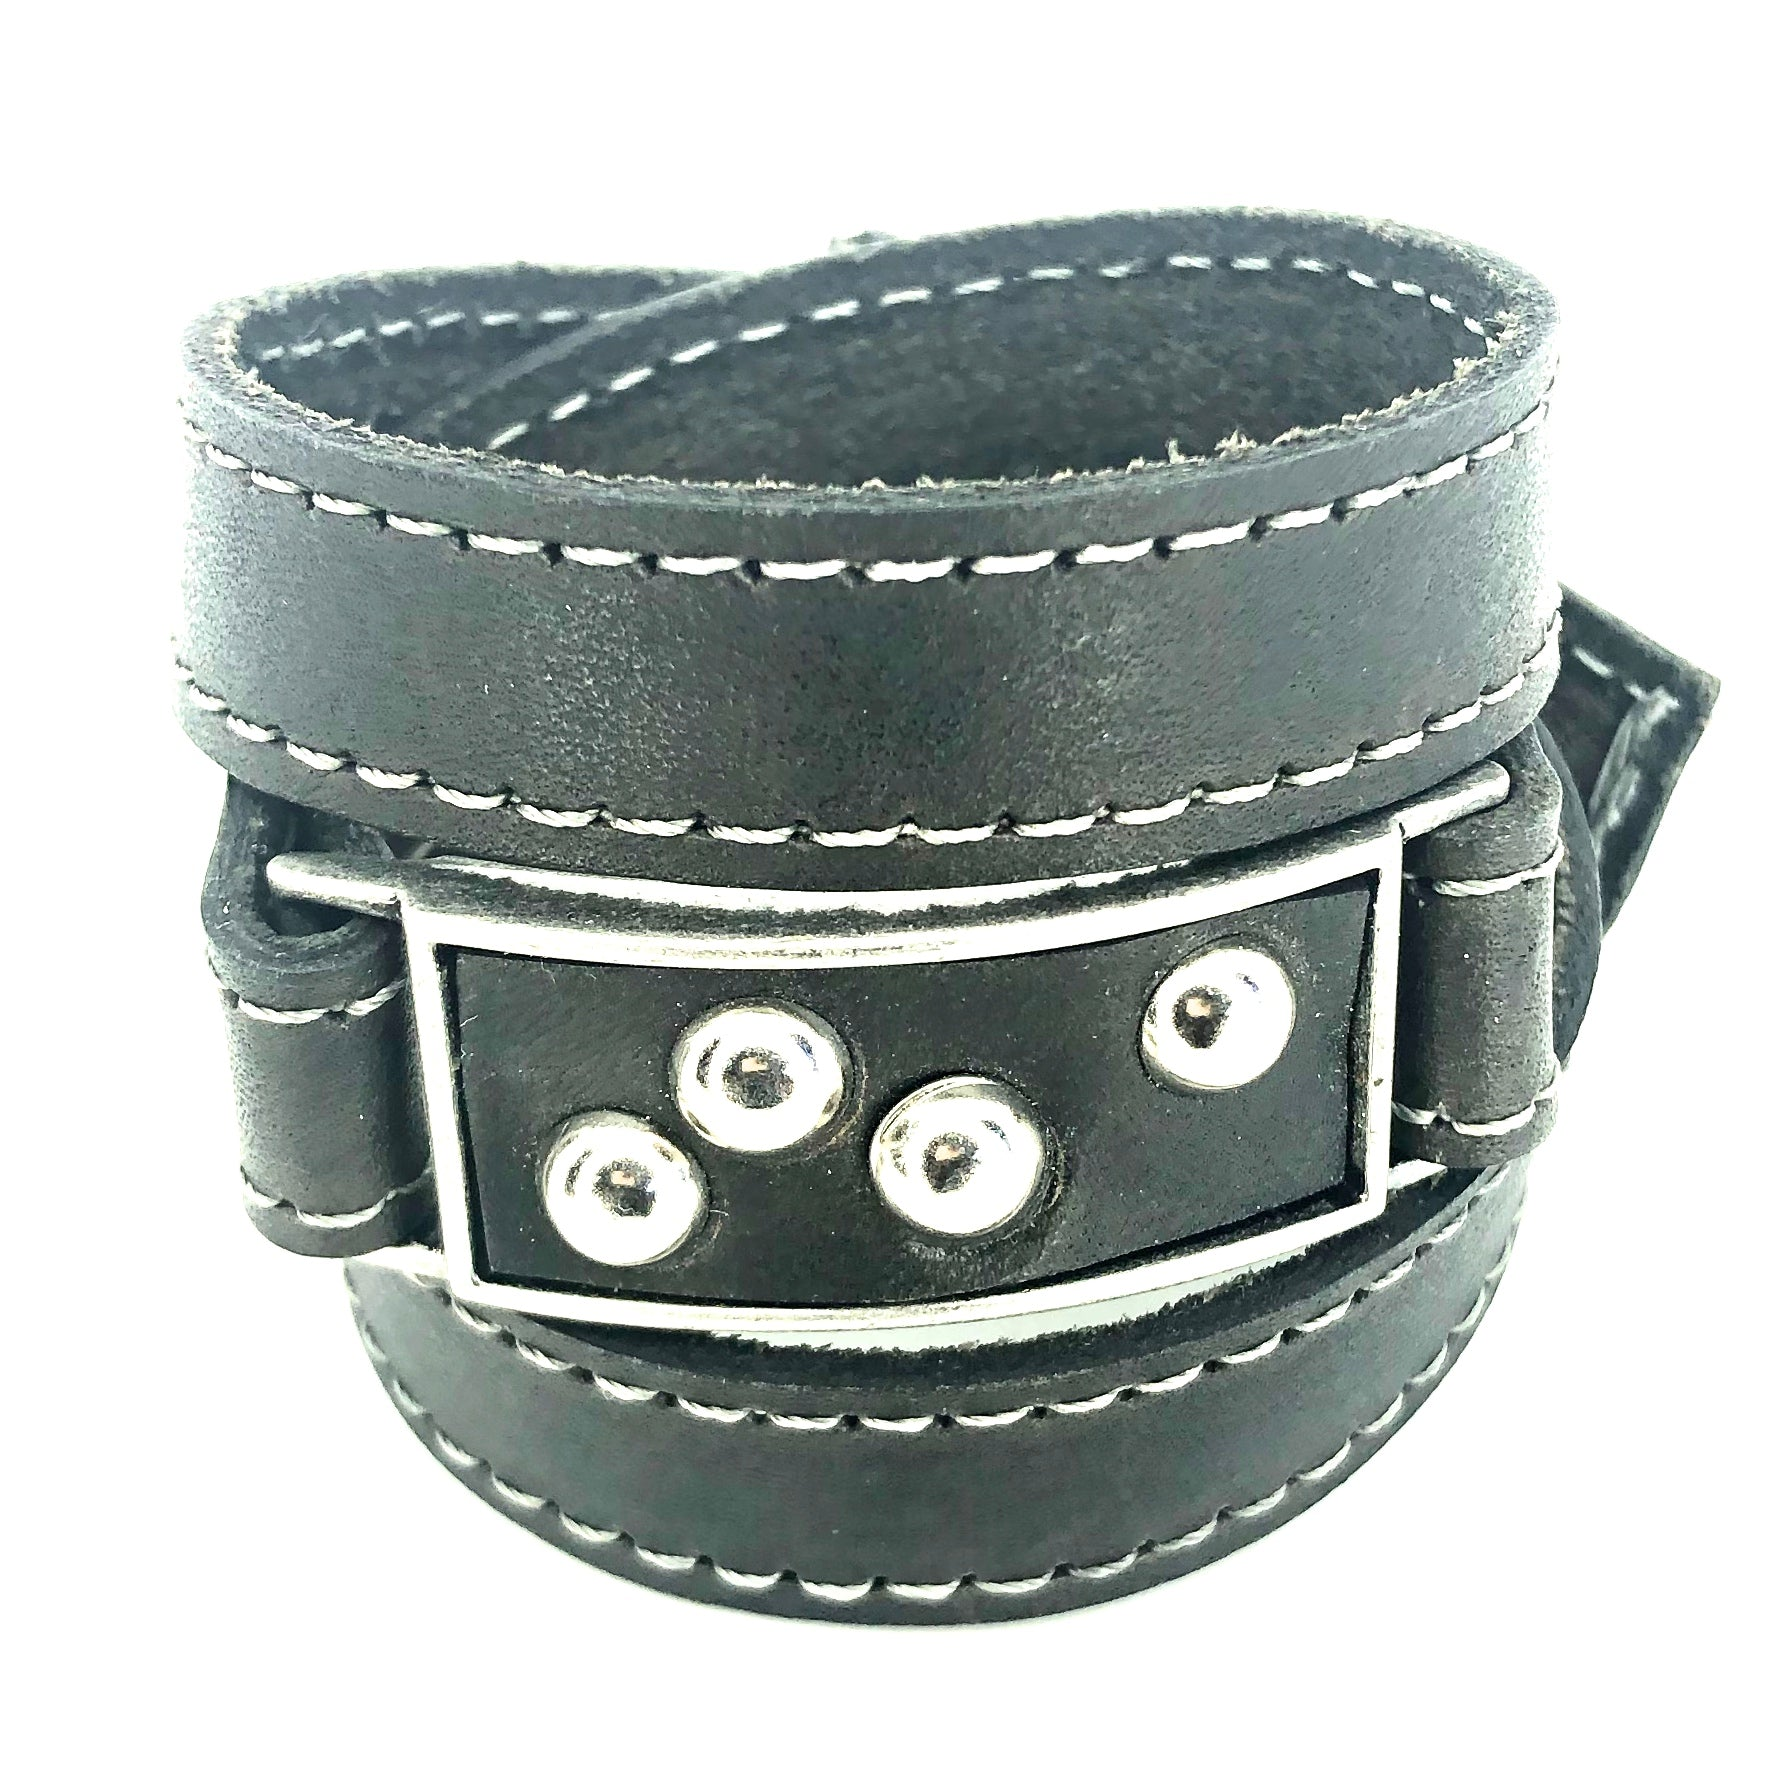 Polo Wraparound Bracelet - by NYet Jewelry